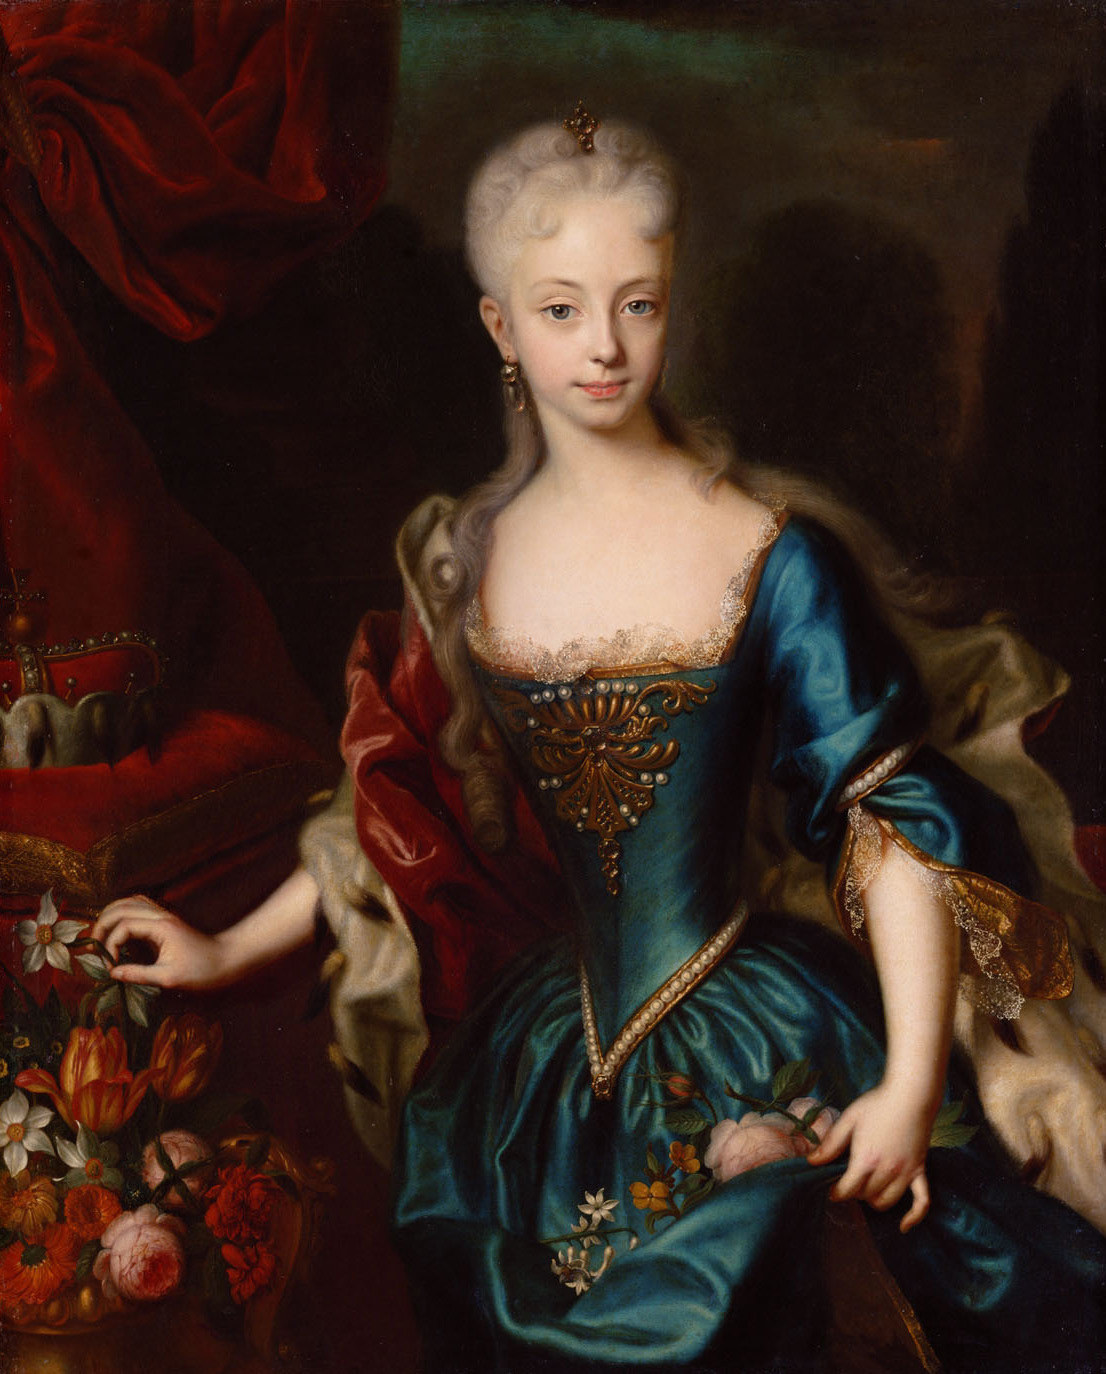 Maria Theresia als junges Mädchen